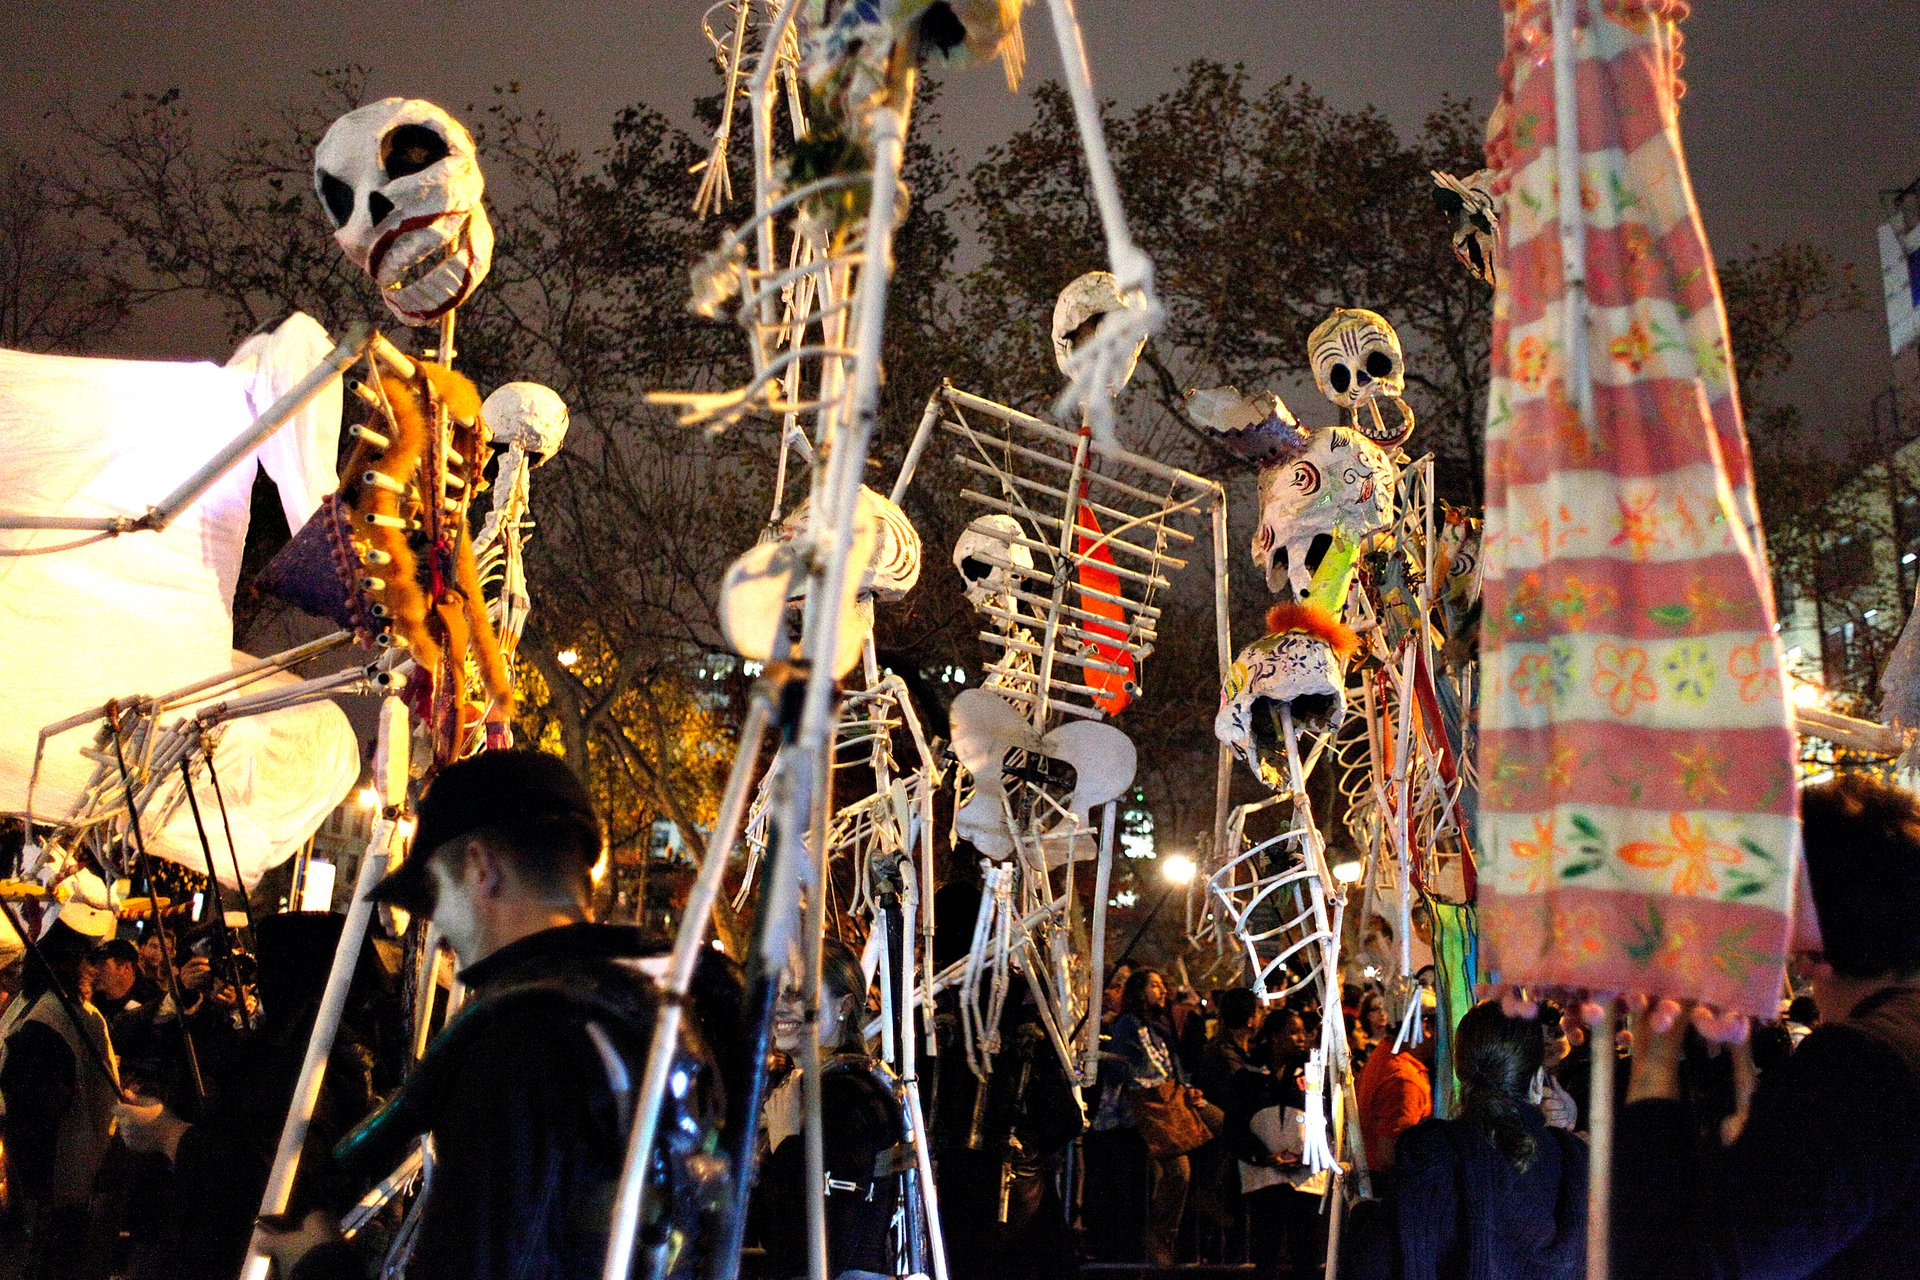 When Is Halloween Parade Nyc 2020 Village Halloween Parade 2020 in New York   Dates & Map